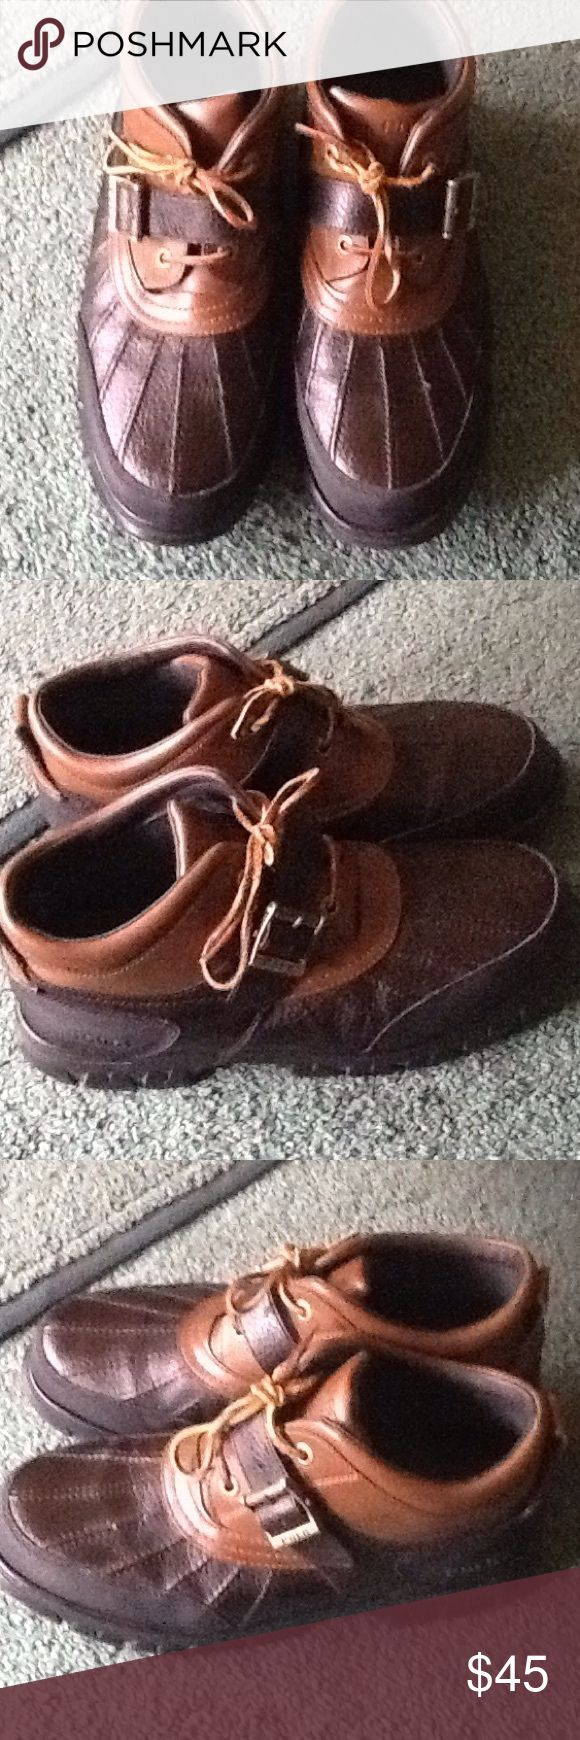 Polo Men ankle boots size 12D Men's POLO ANKLE BOOTS size 12D preowned very good condition Ralph Lauren Shoes Ankle Boots & Booties